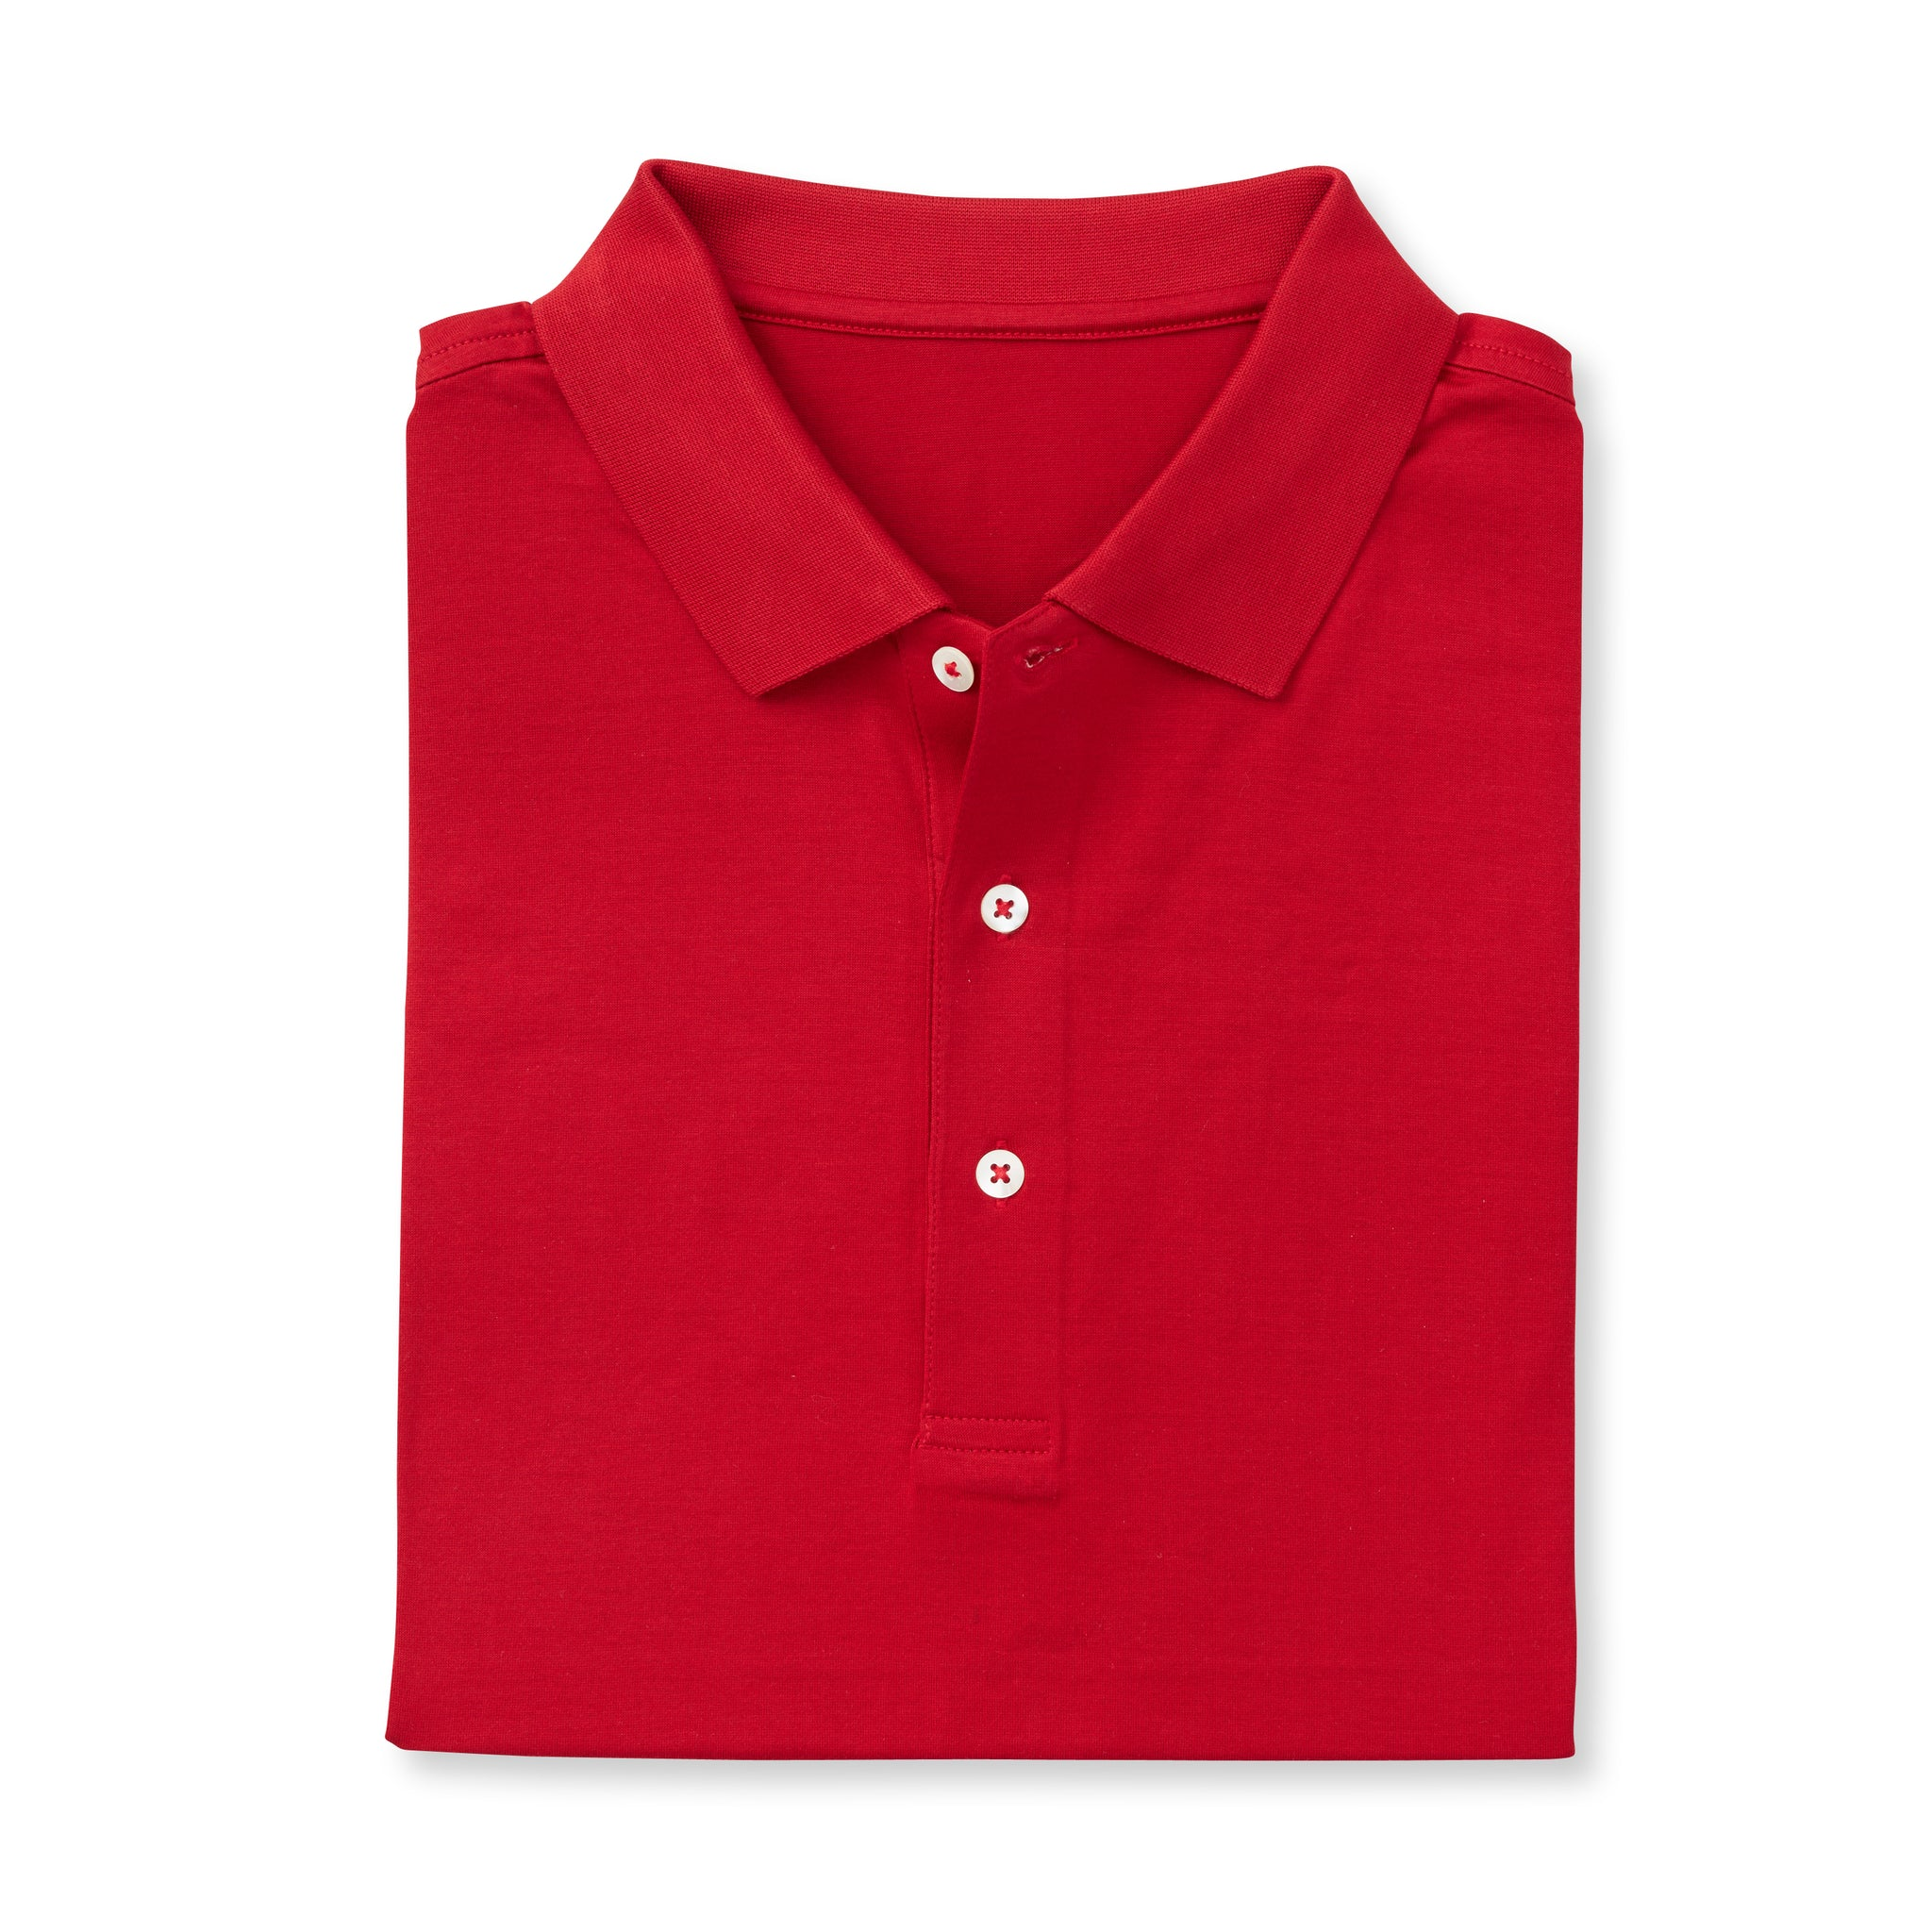 SUPIMA Short Sleeve Mercerized Polo - Crimson IS62200